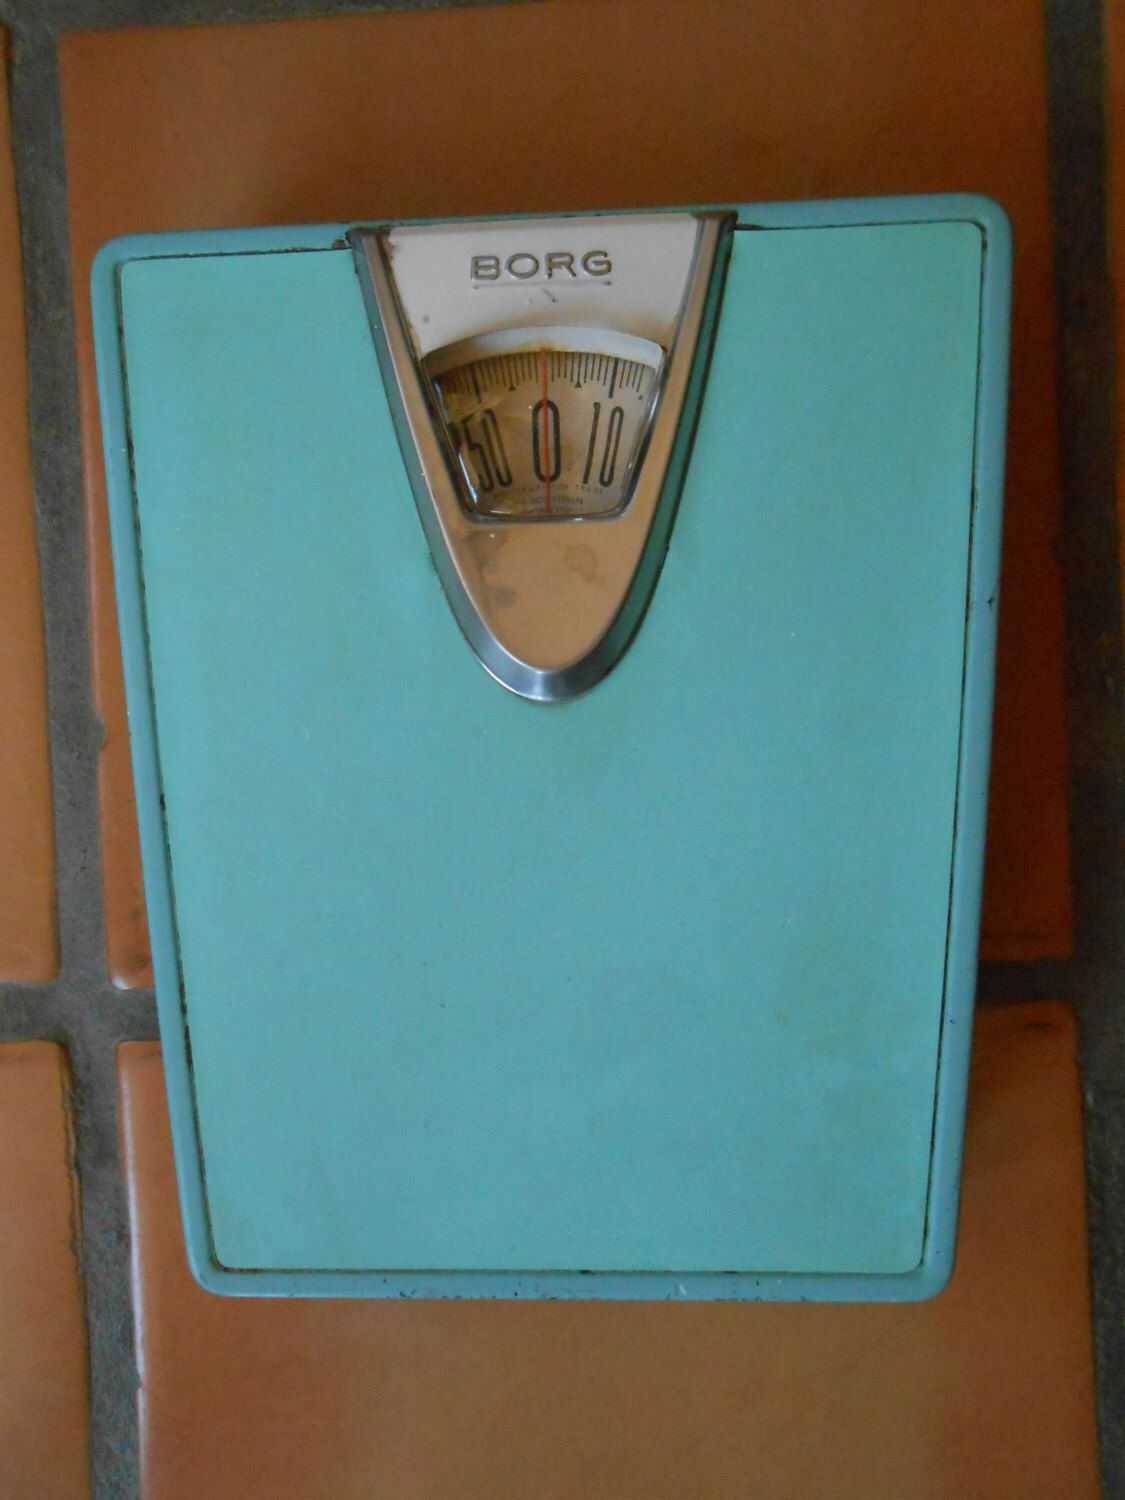 Retro bathroom scales - Bathroom Scale Early 1950s Borg Erickson Corp Pat Nos 2228874